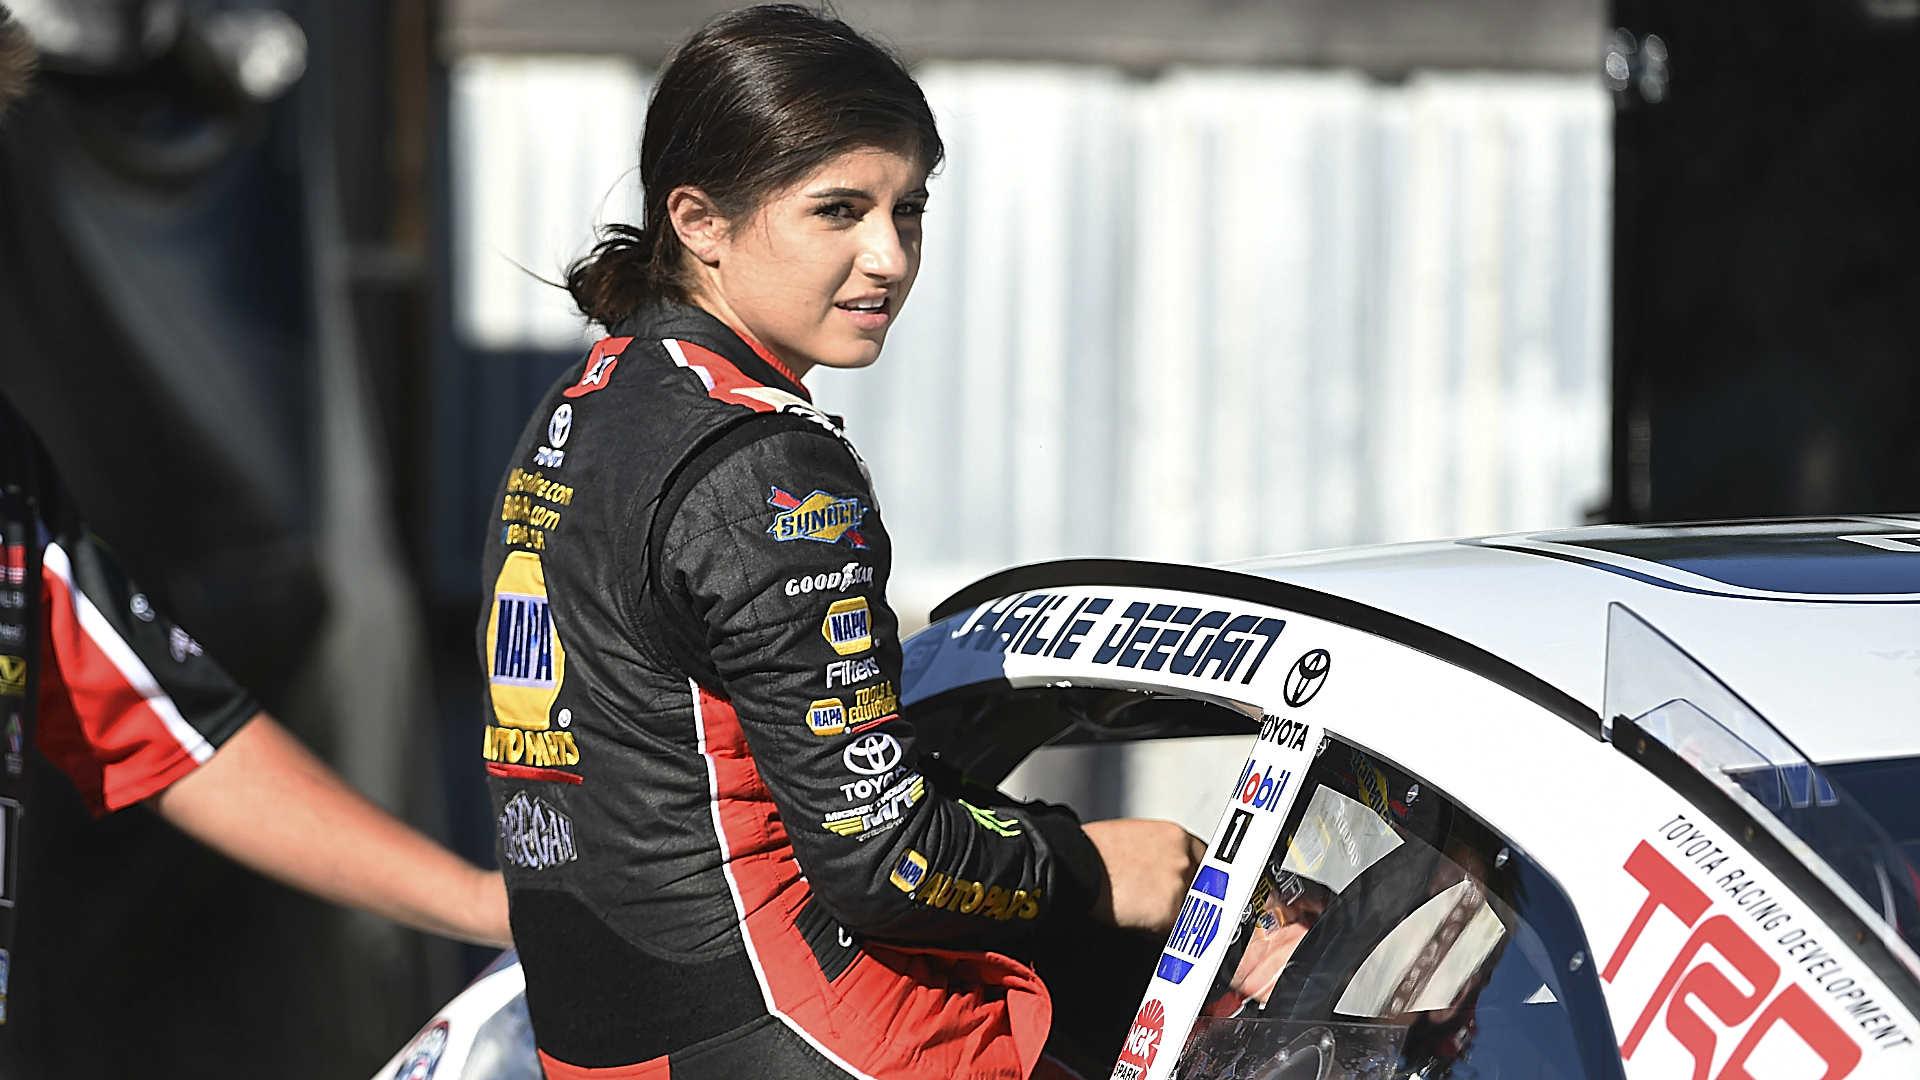 Hailie-Deegan-091418-Getty-FTR.jpg